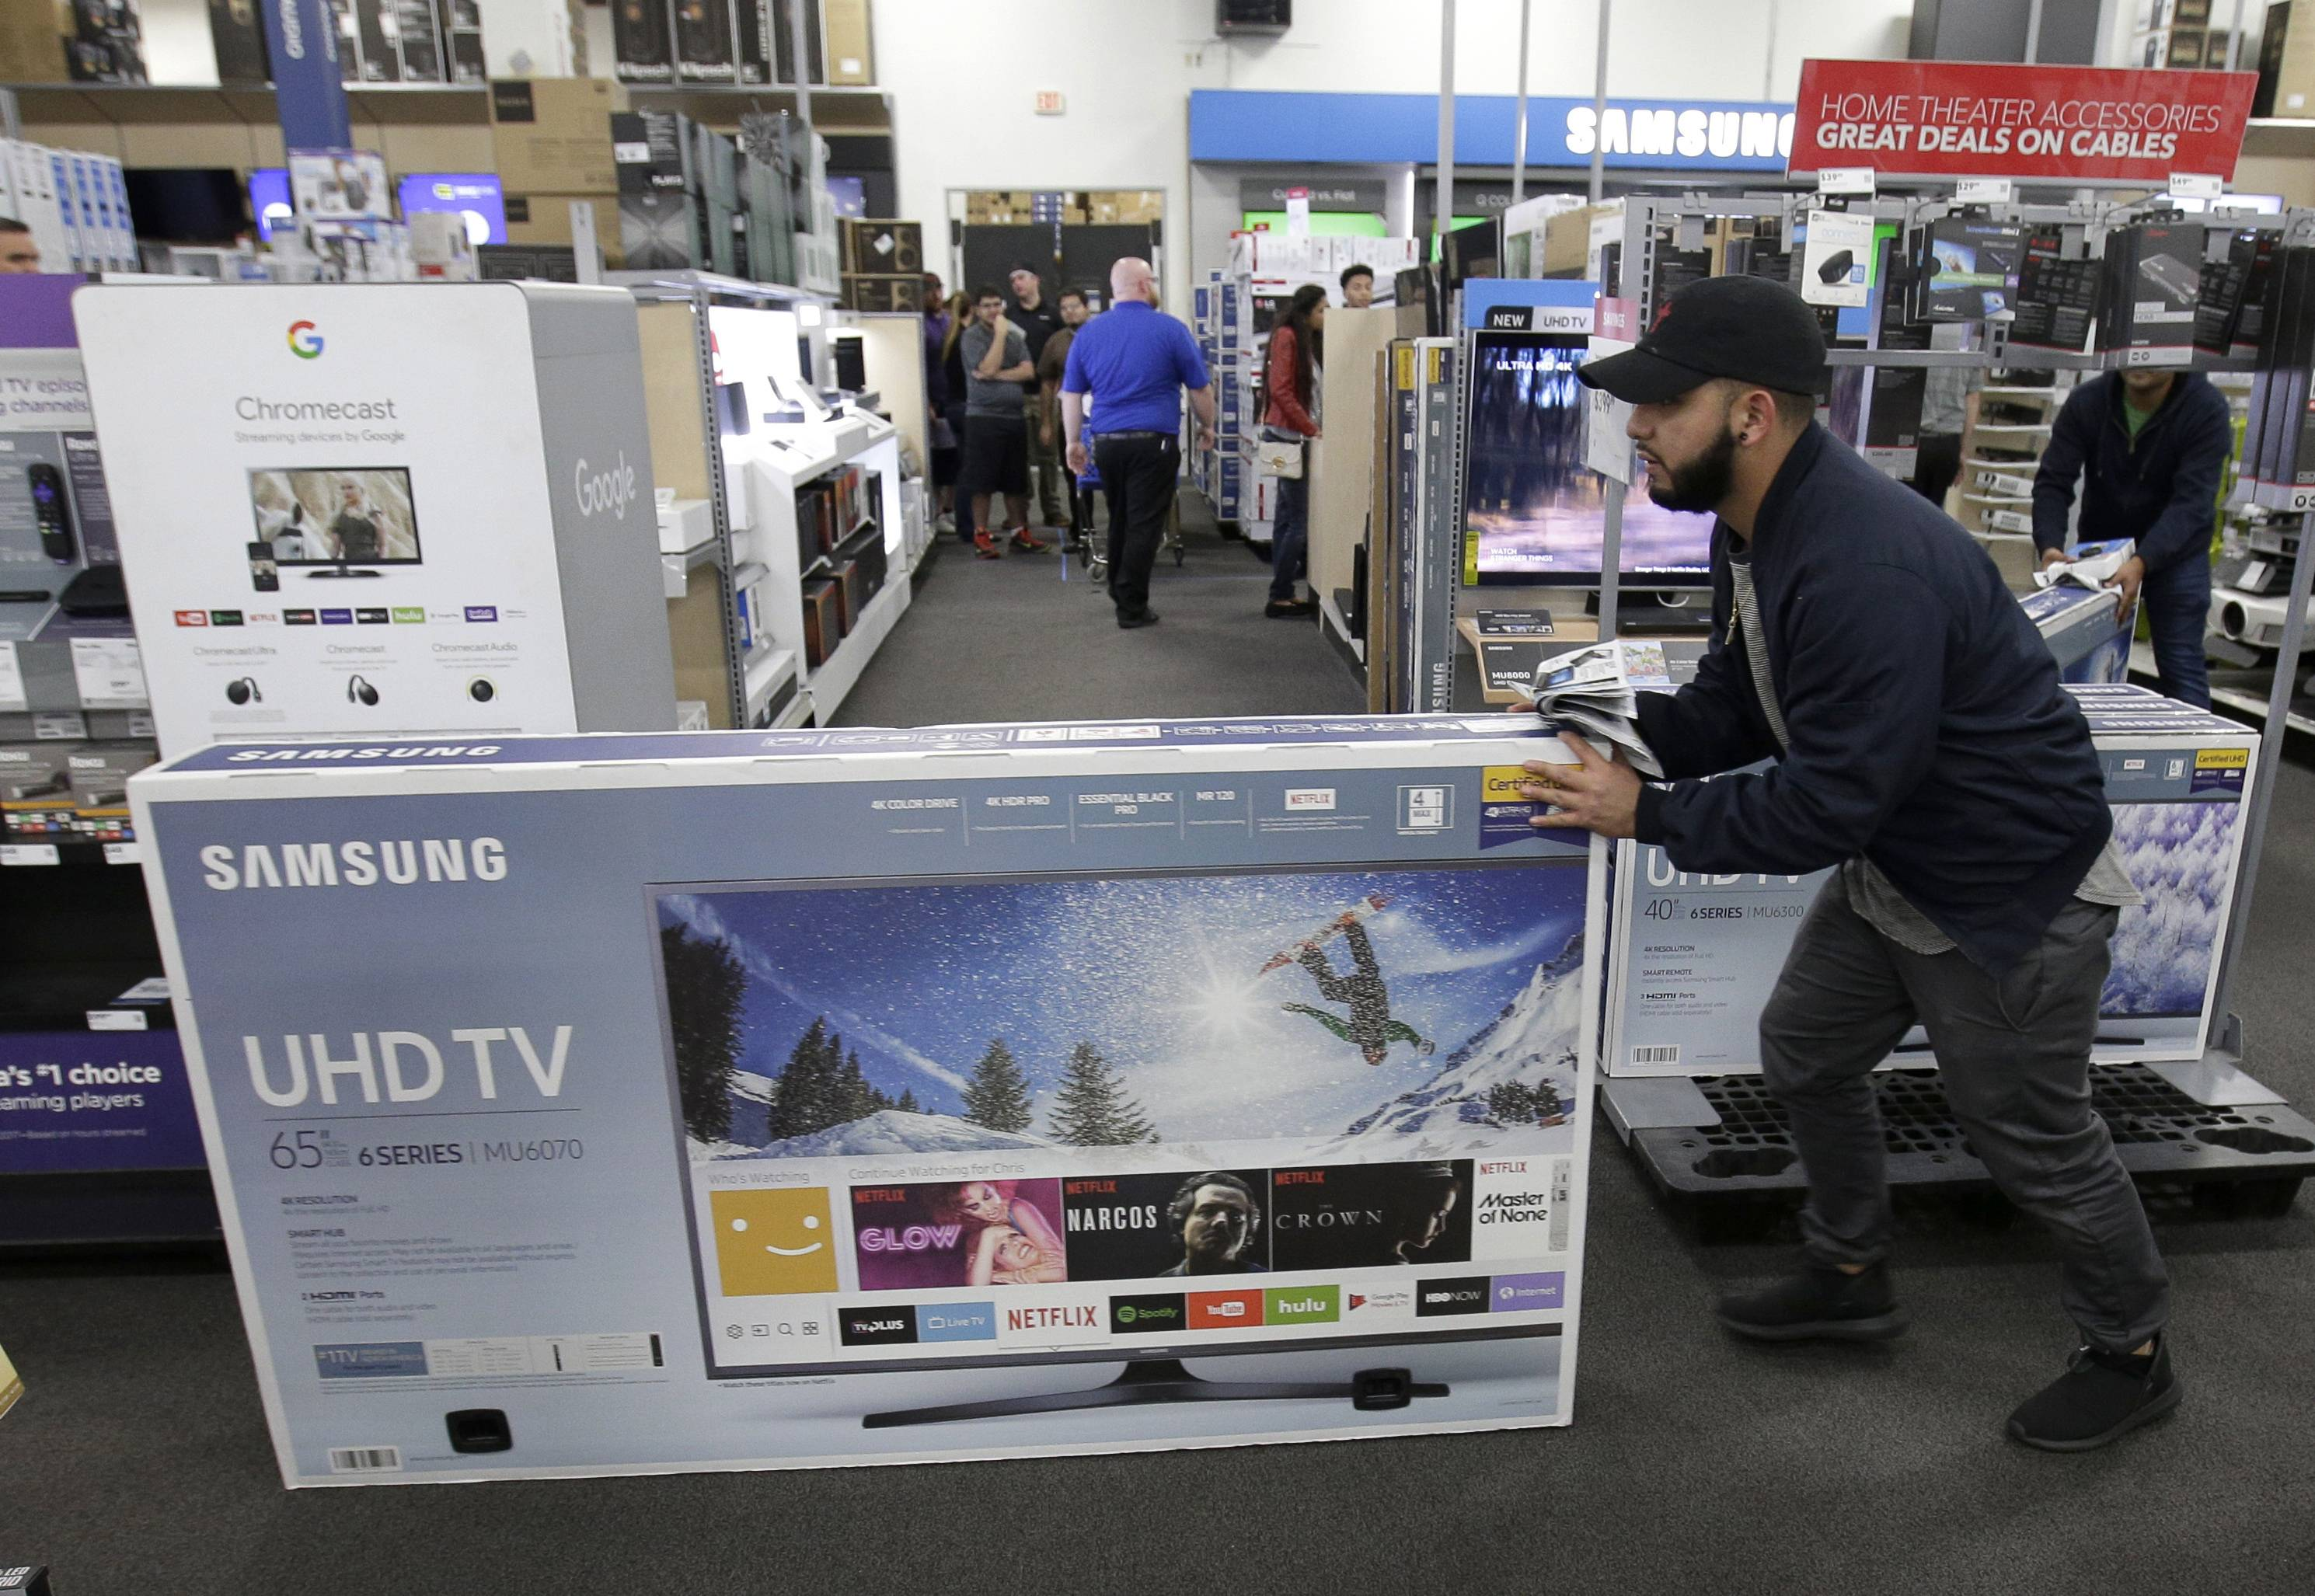 Just before the Super Bowl, retailers normally discount their selections of HDTVs and other home-theater essentials making January a good month to shop for electronics.